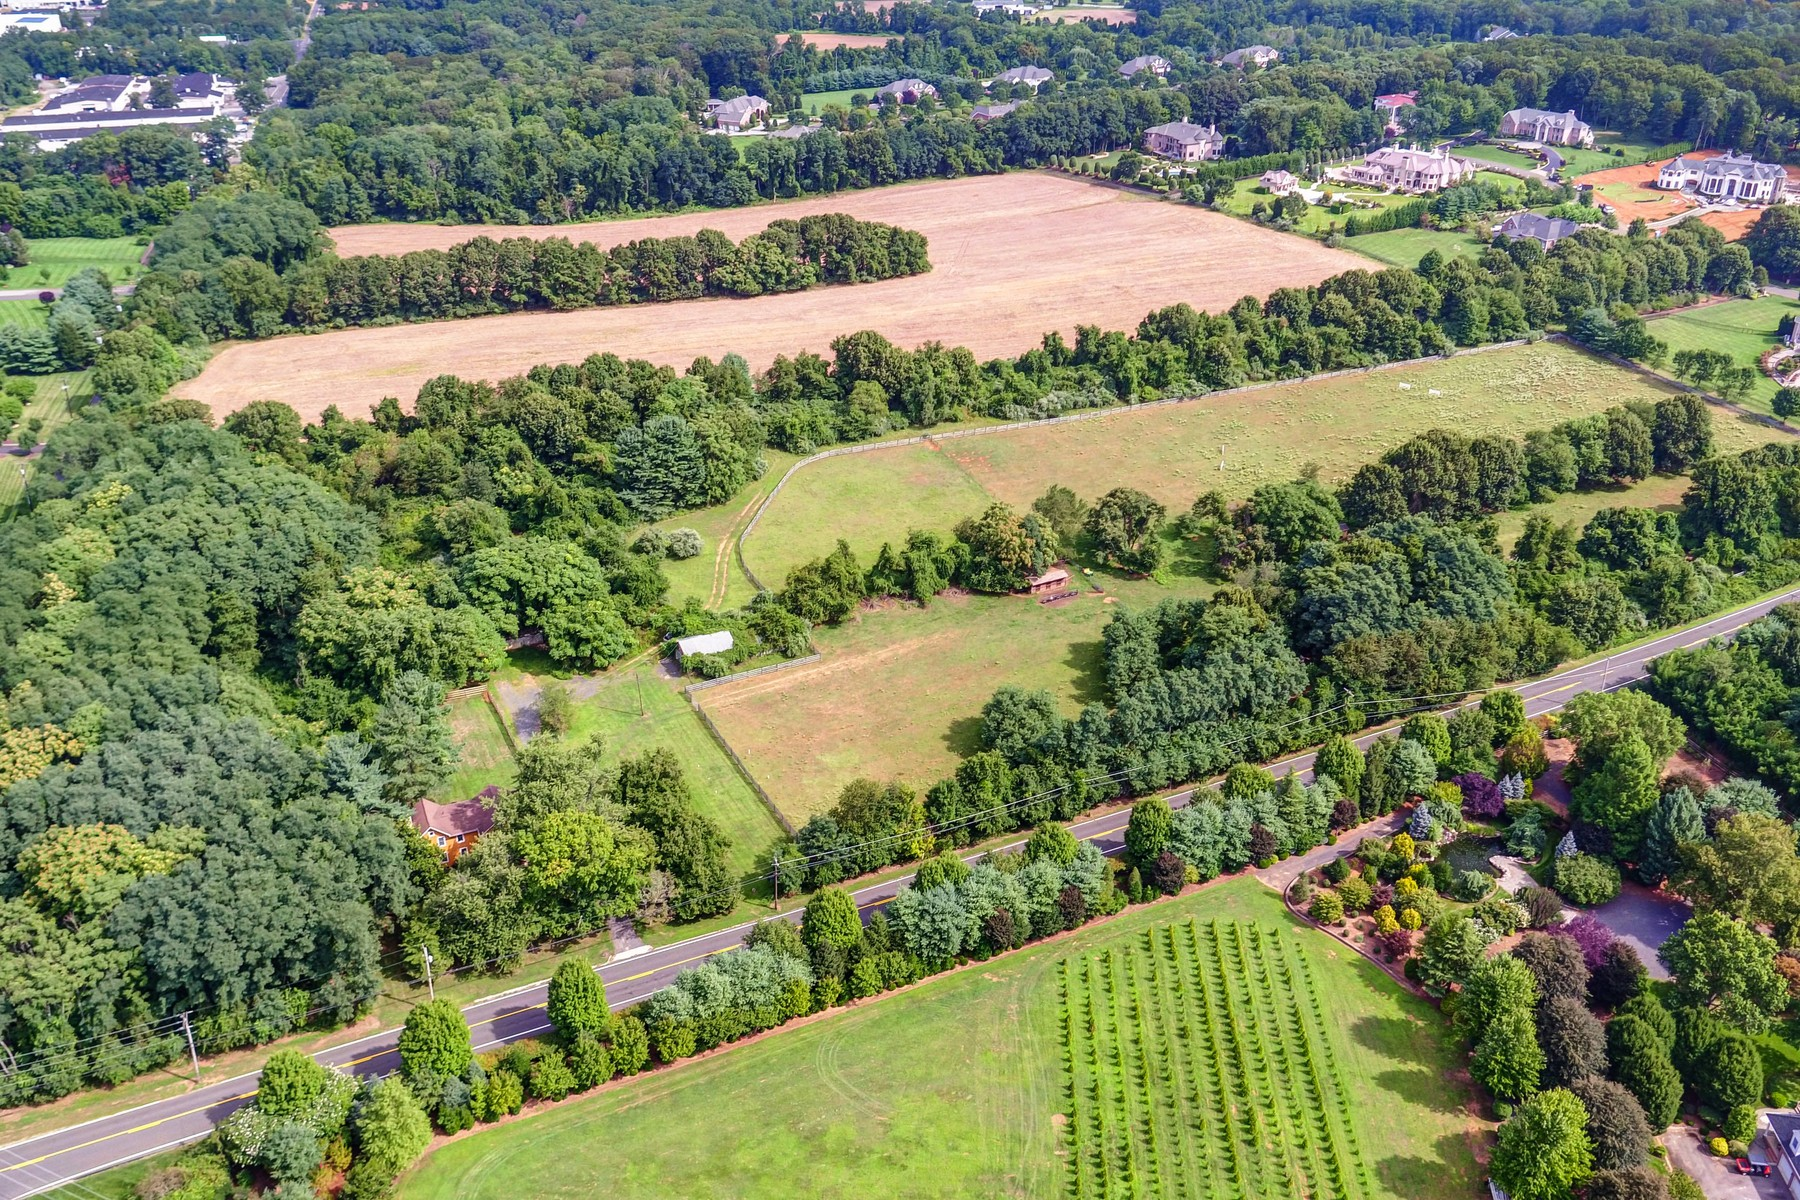 Fattoria / ranch / campagna per Vendita alle ore 40 Acre Working Farm 151 Dutch Lane Road, Colts Neck, New Jersey 07722 Stati Uniti